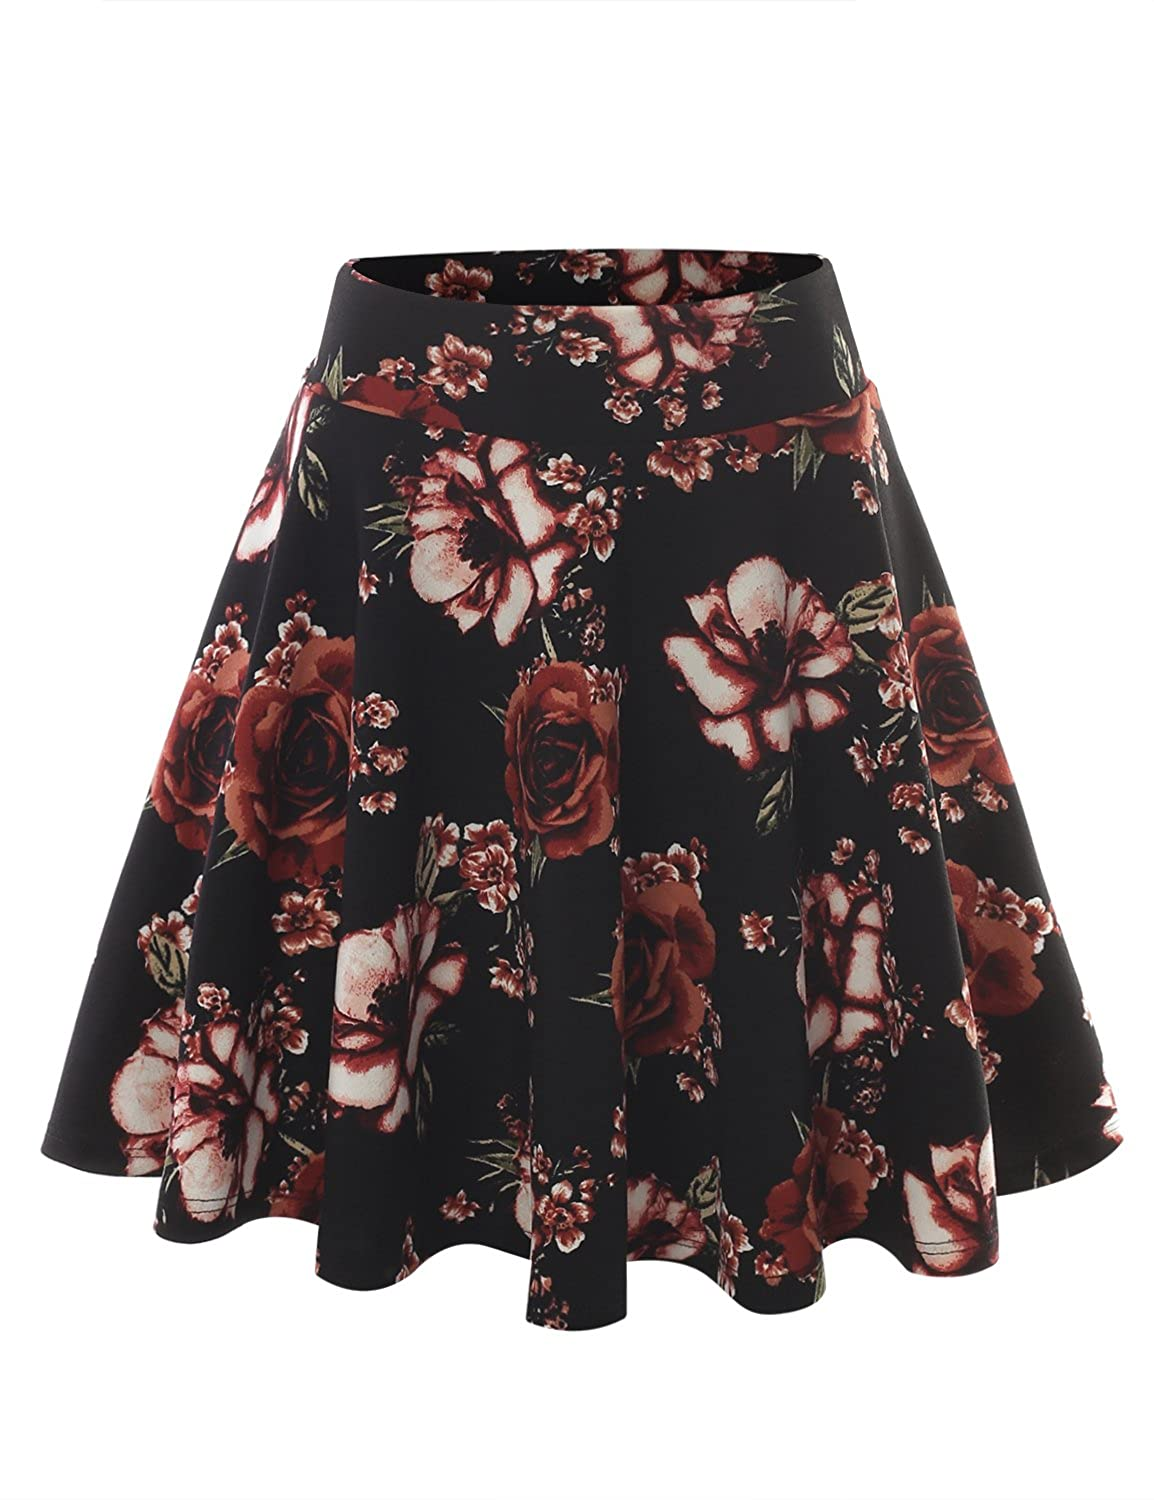 d3269509cc1 This versatile skater skirt is a must to make an amazing outfit   You can  wear it in any occasion - school